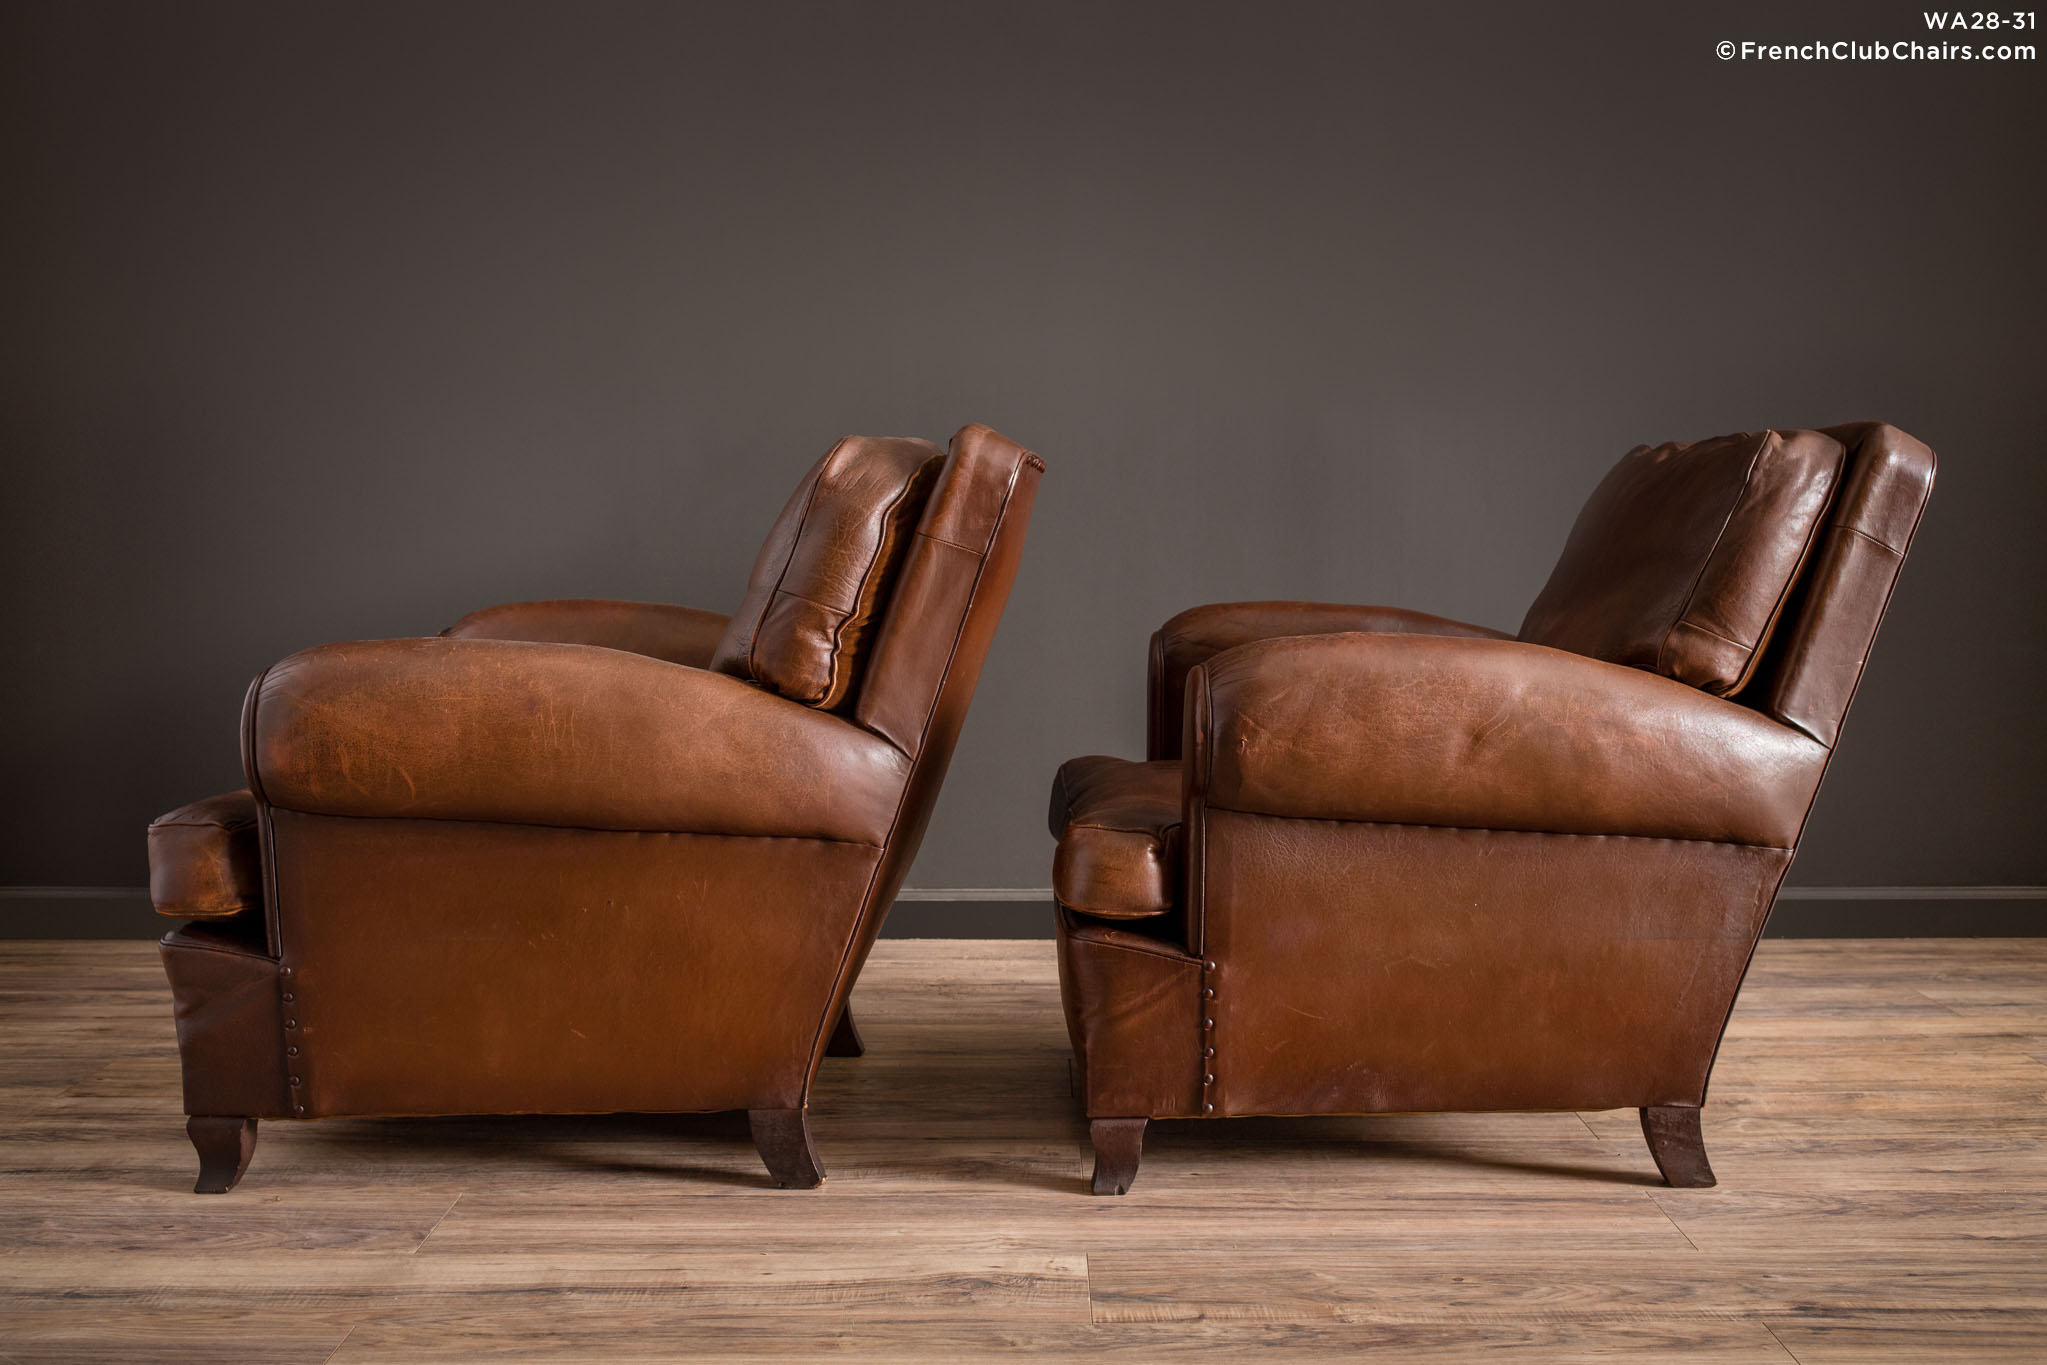 WA_28-31_DeGaulle_Library_Pair_R_4LT1-williams-antiks-leather-french-club-chair-wa_fcccom